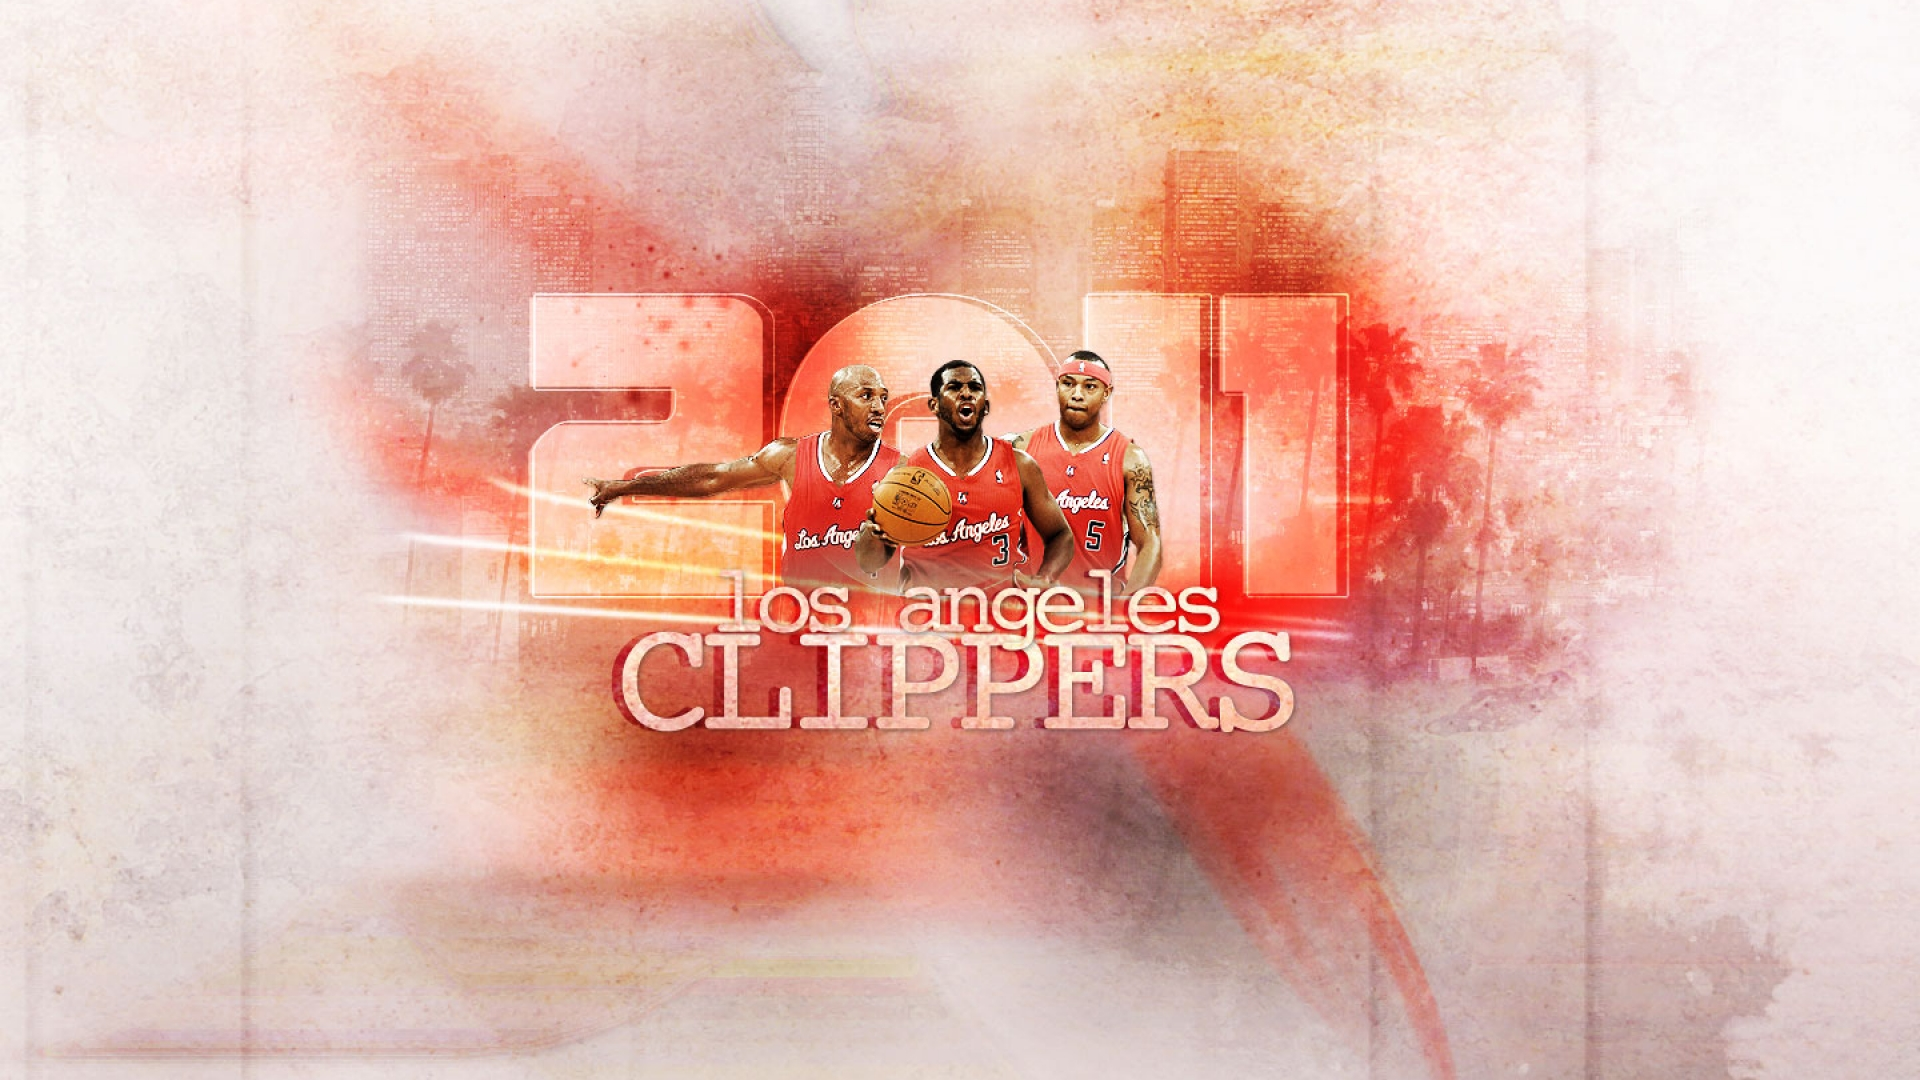 LA Clippers 2012 Wallpaper